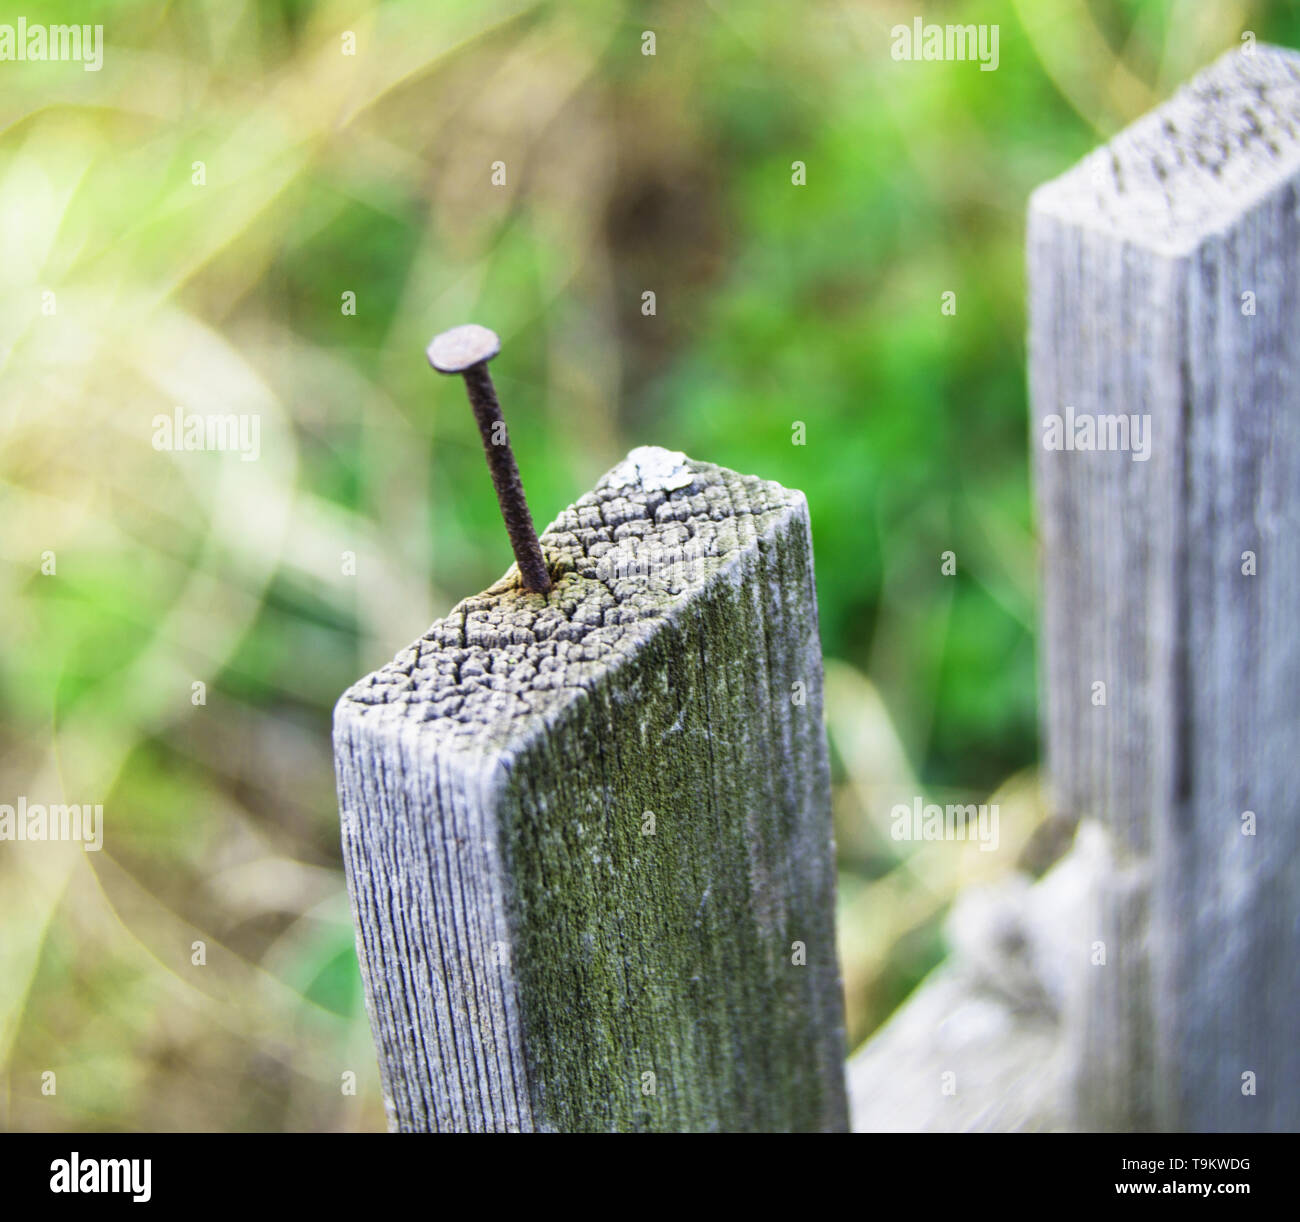 Old wooden fence and a rusty nail sticking out. Stock Photo